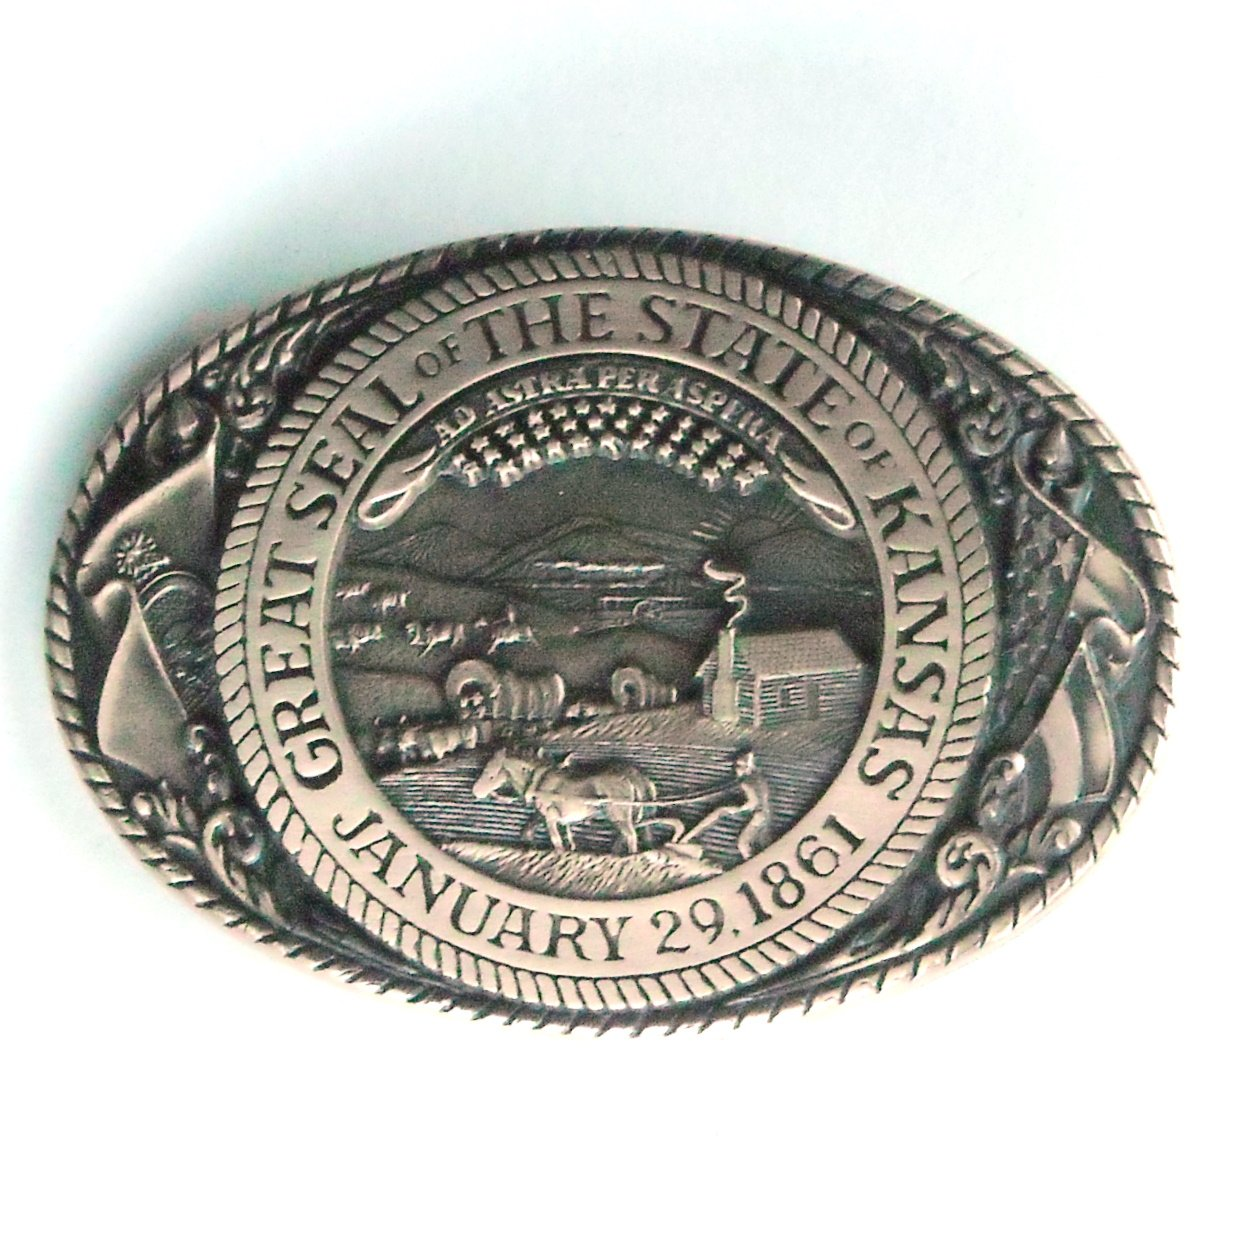 Tony Lama Vintage Great Seal Of The State Of Kansas brass belt buckle